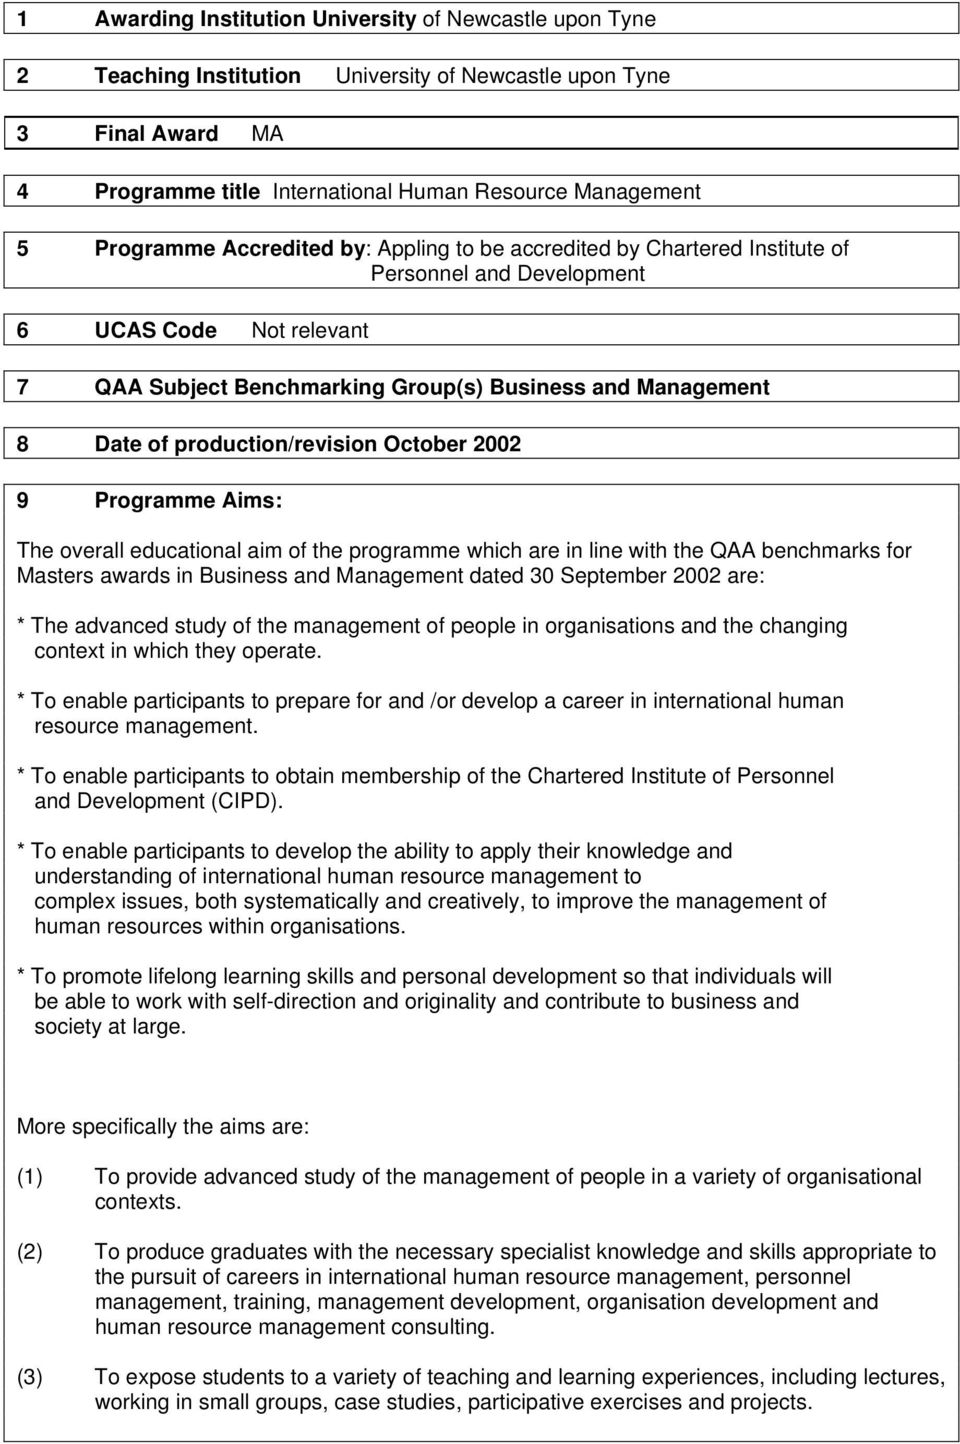 production/revision October 2002 9 Programme Aims: The overall educational aim of the programme which are in line with the QAA benchmarks for Masters awards in Business and Management dated 30